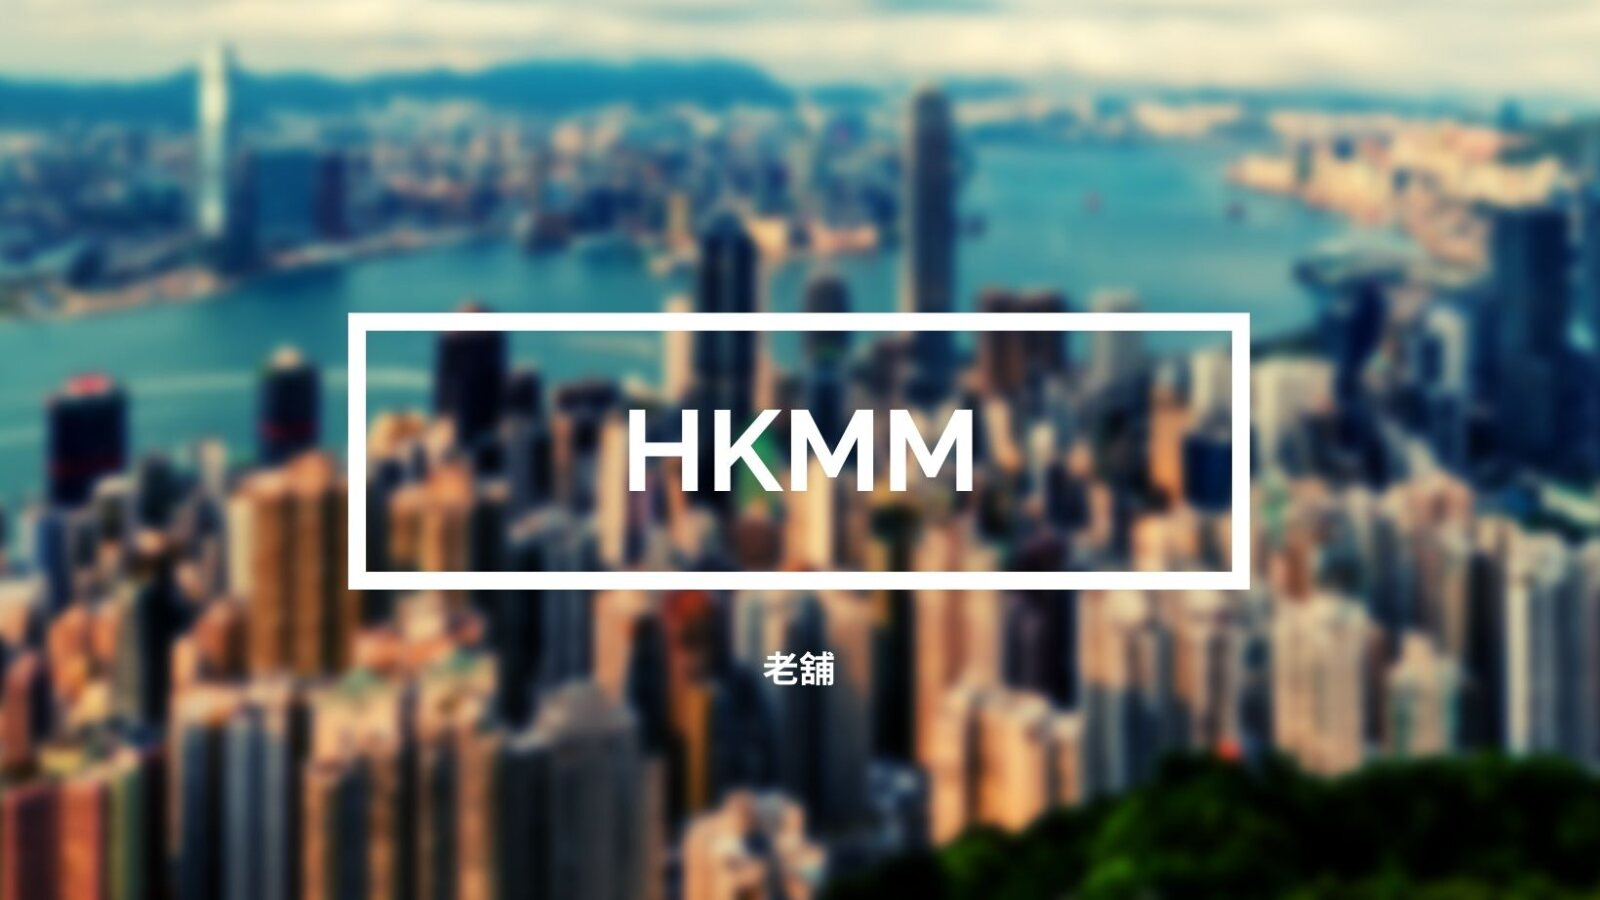 HKMM (Hong Kong Memories)